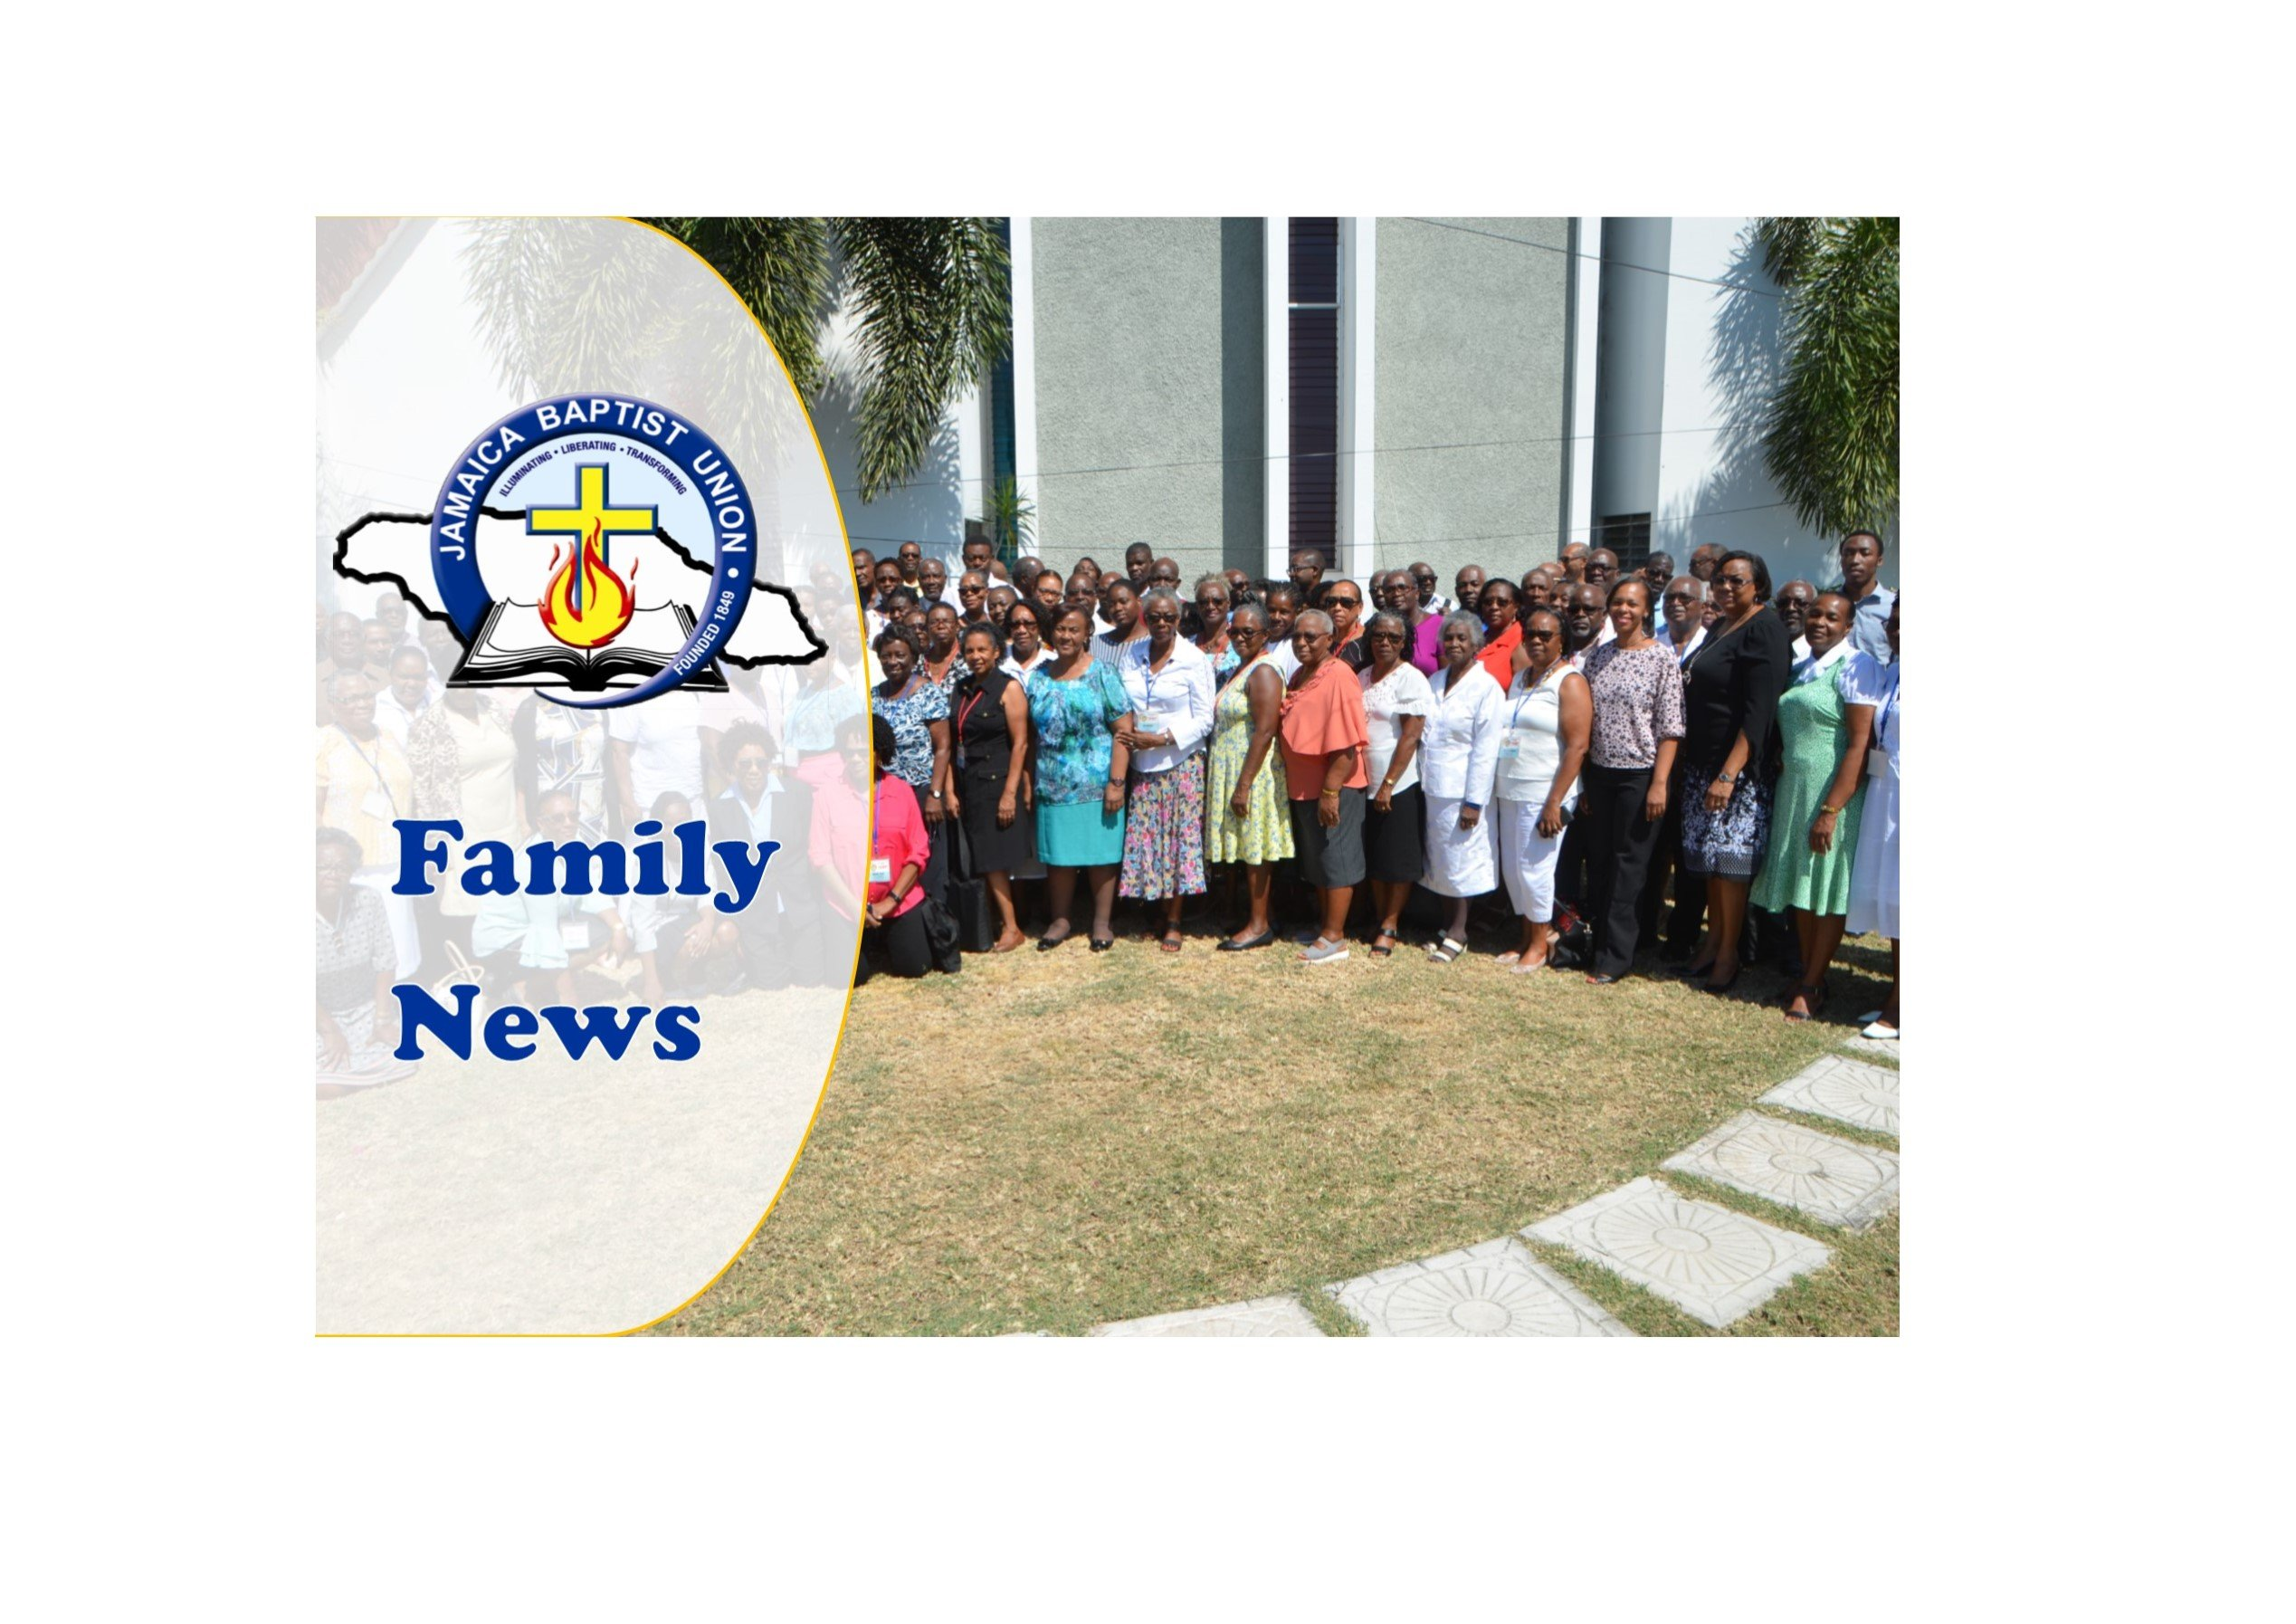 Family News – Congratulations